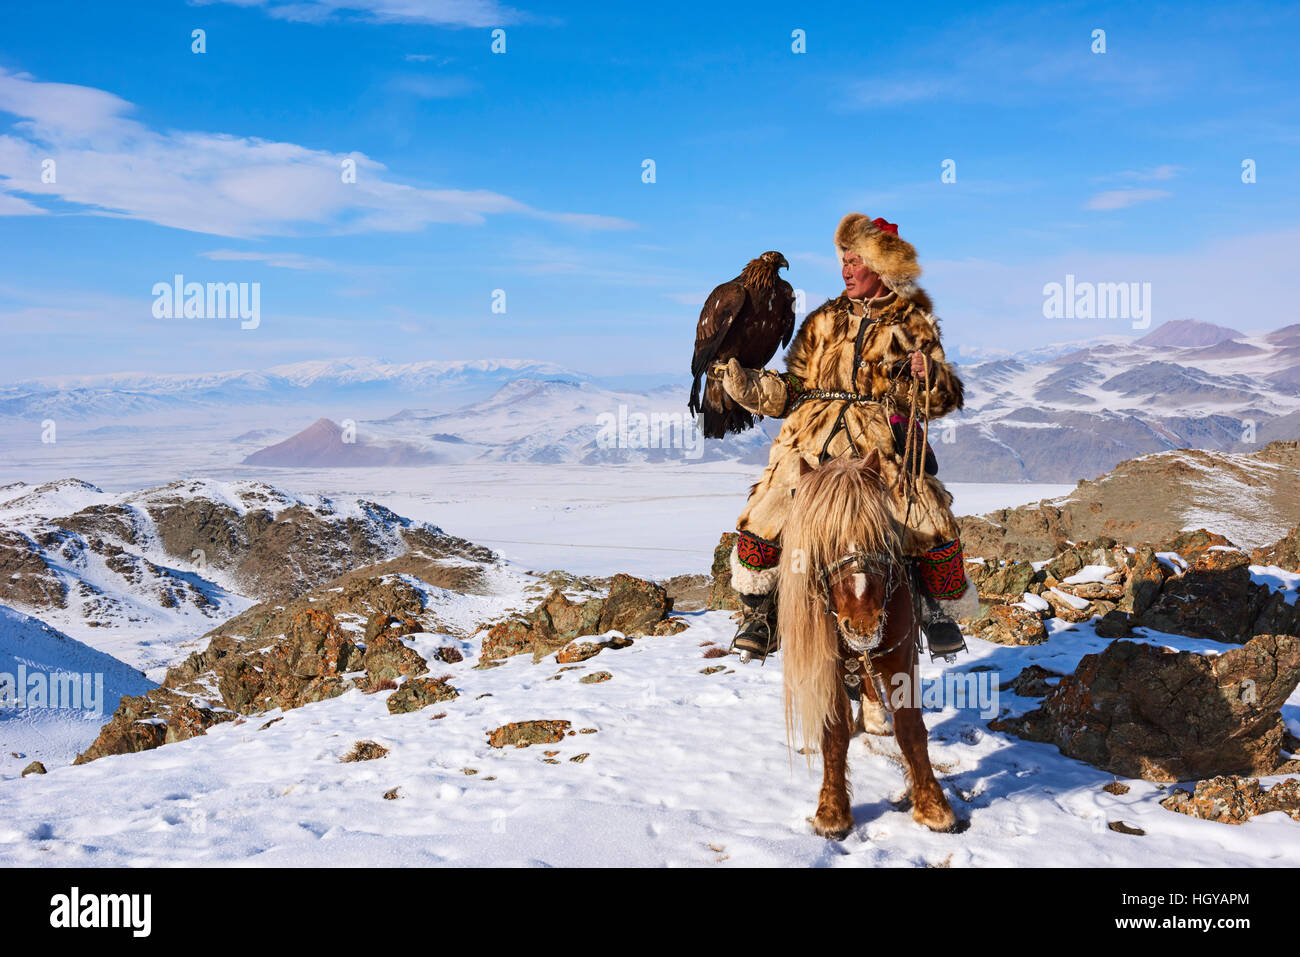 Mongolia, Bayan Olgii, kazakh eagle hunter, Eagle hunting, golden eagle Stock Photo